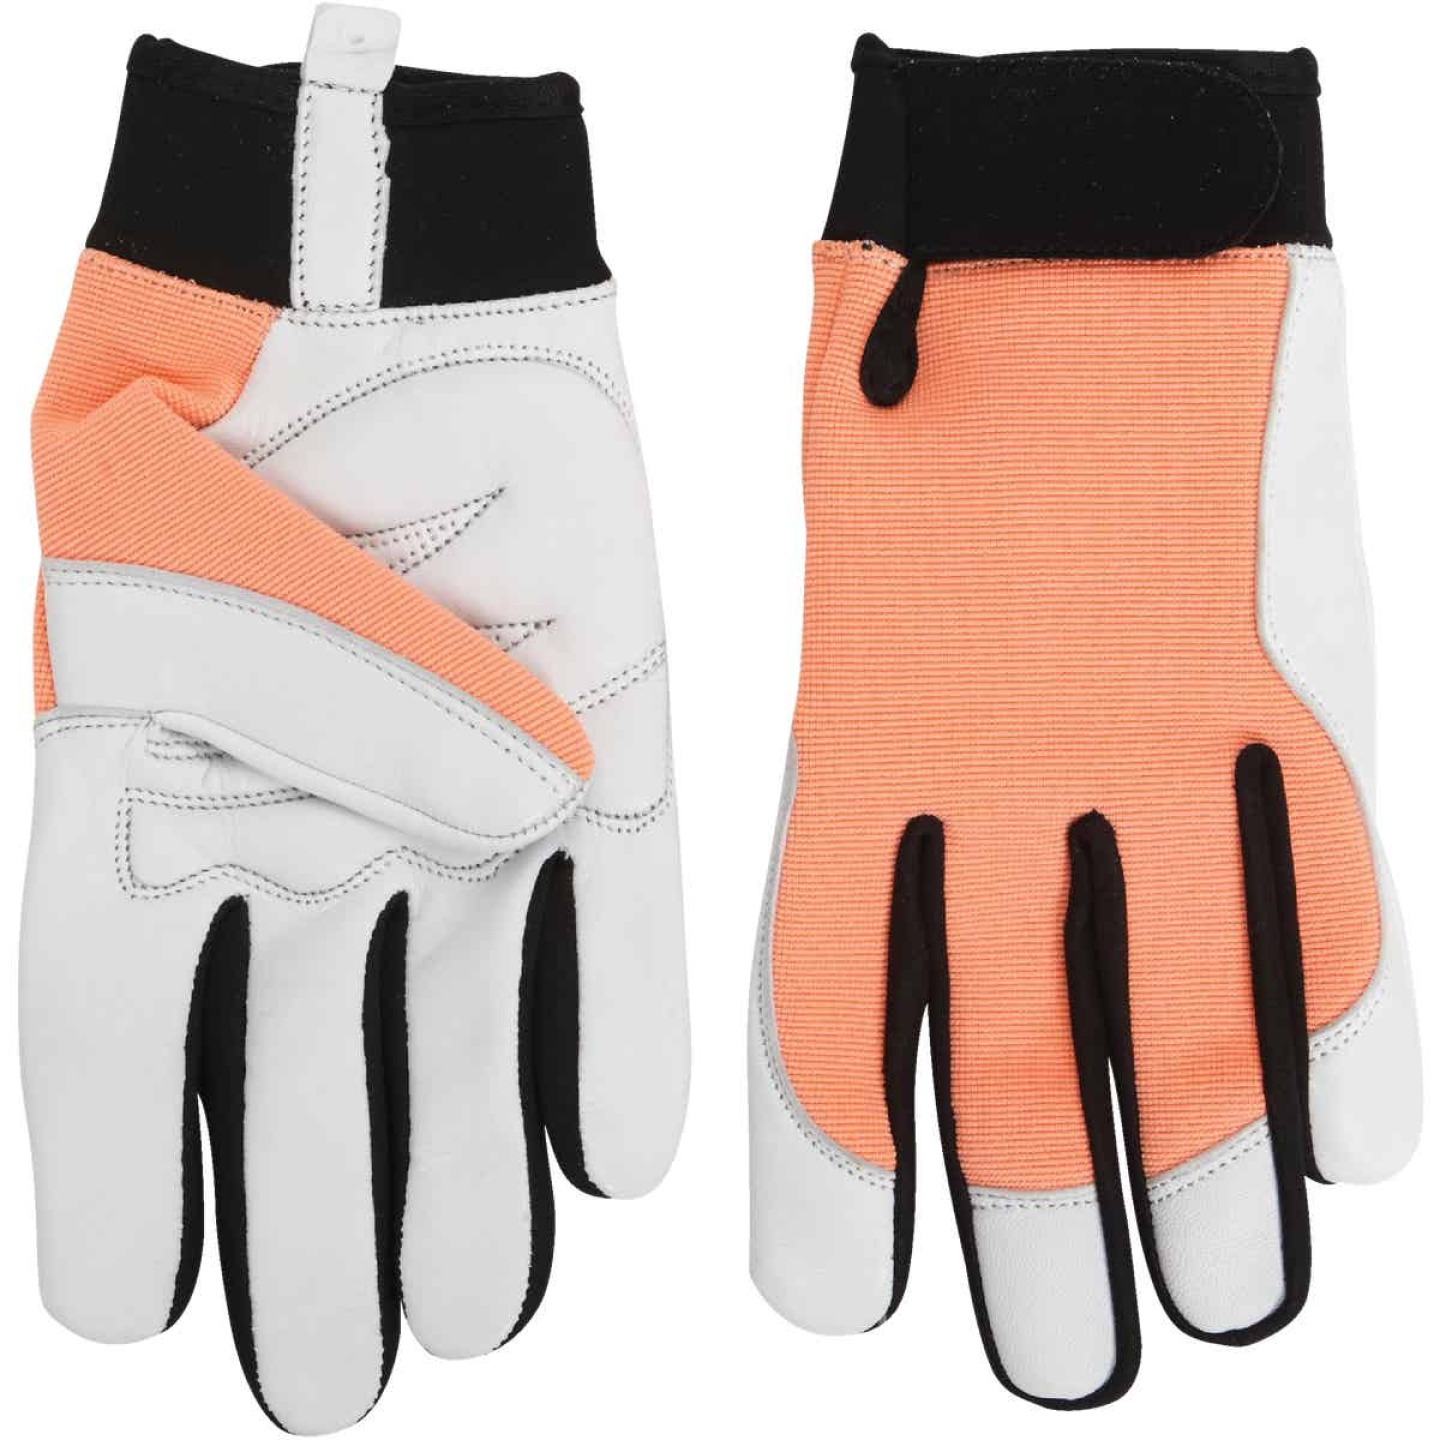 Midwest Gloves & Gear Women's Small Goatskin Leather Work Glove Image 3